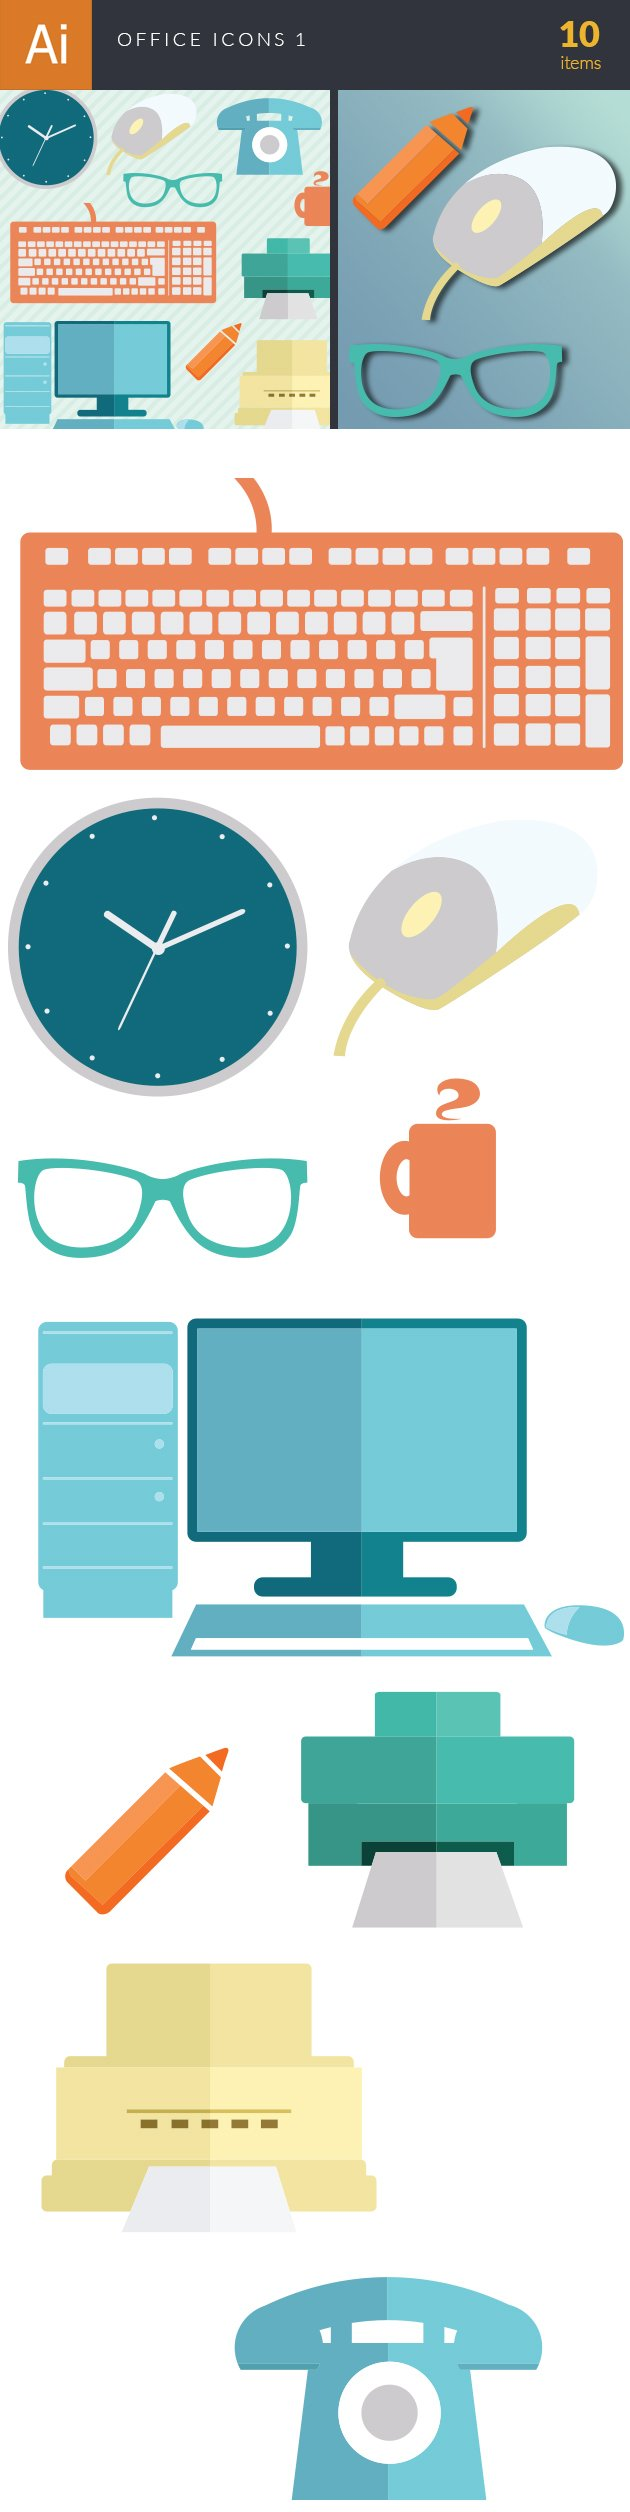 Office Icons Vector Set 1 2